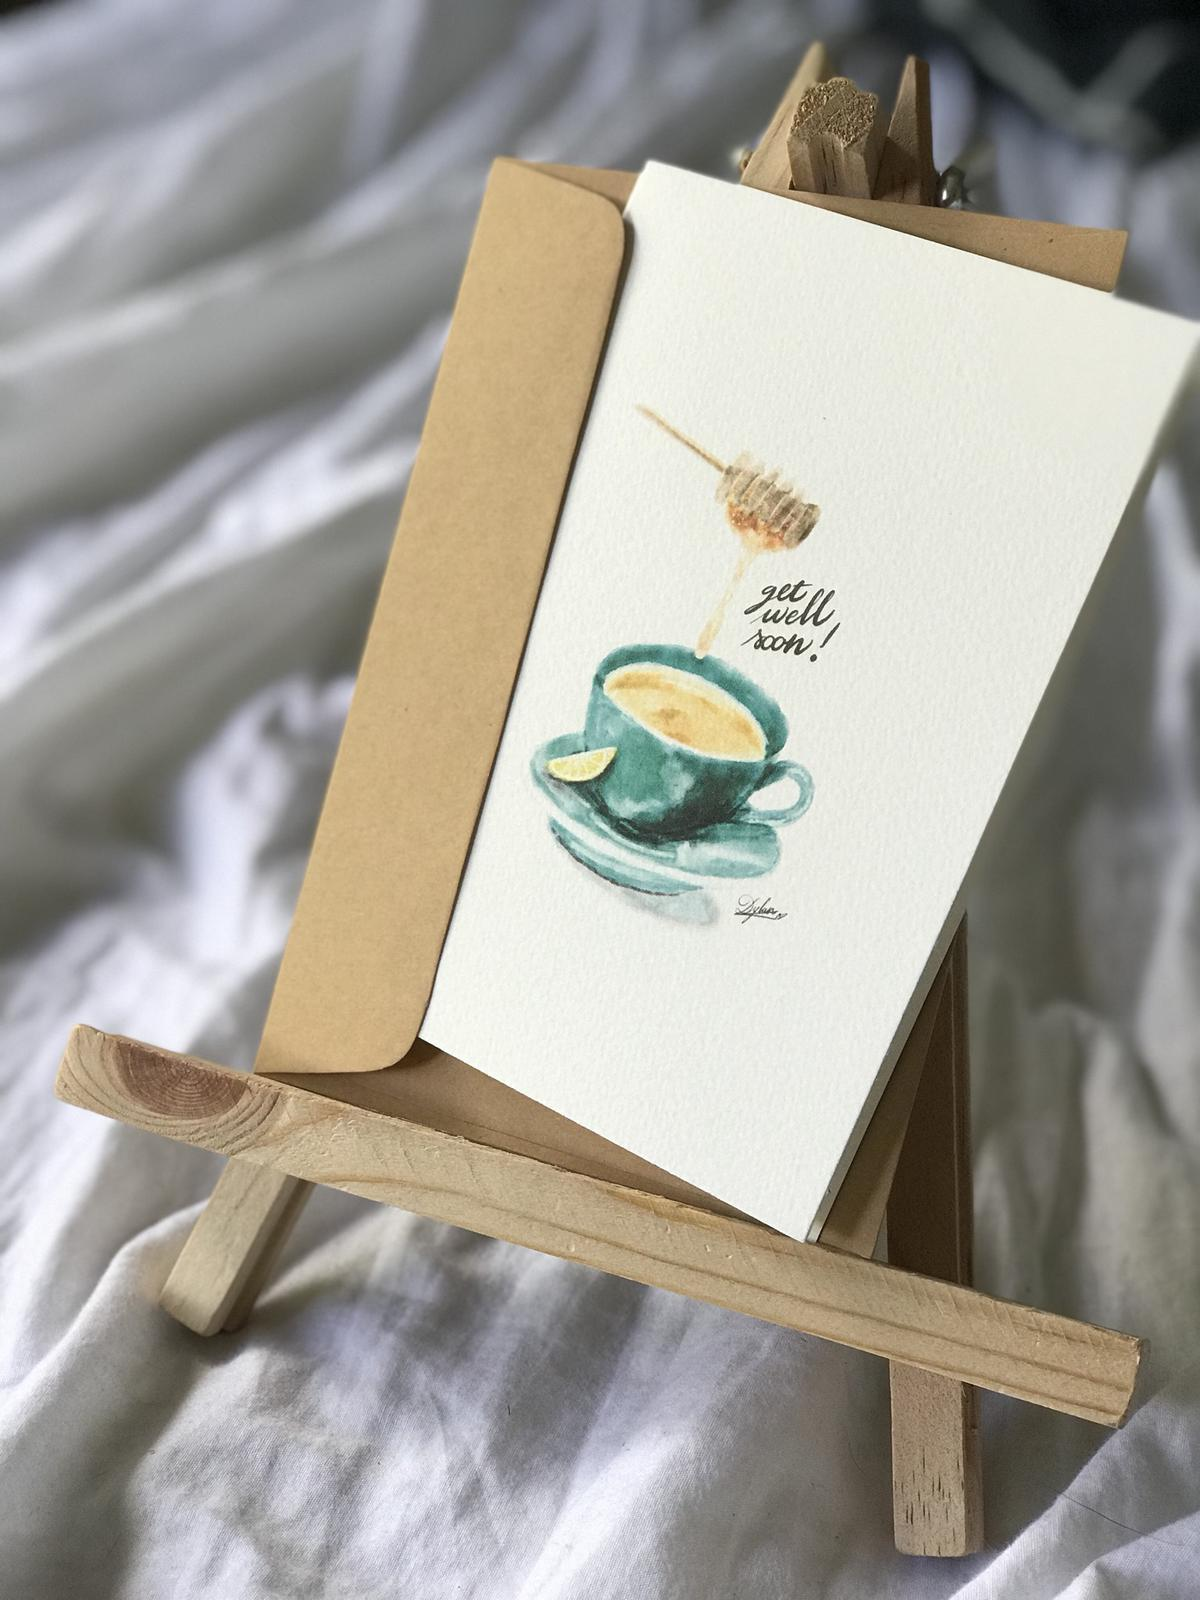 Product Images - Get Well Soon! *HONEY TEA